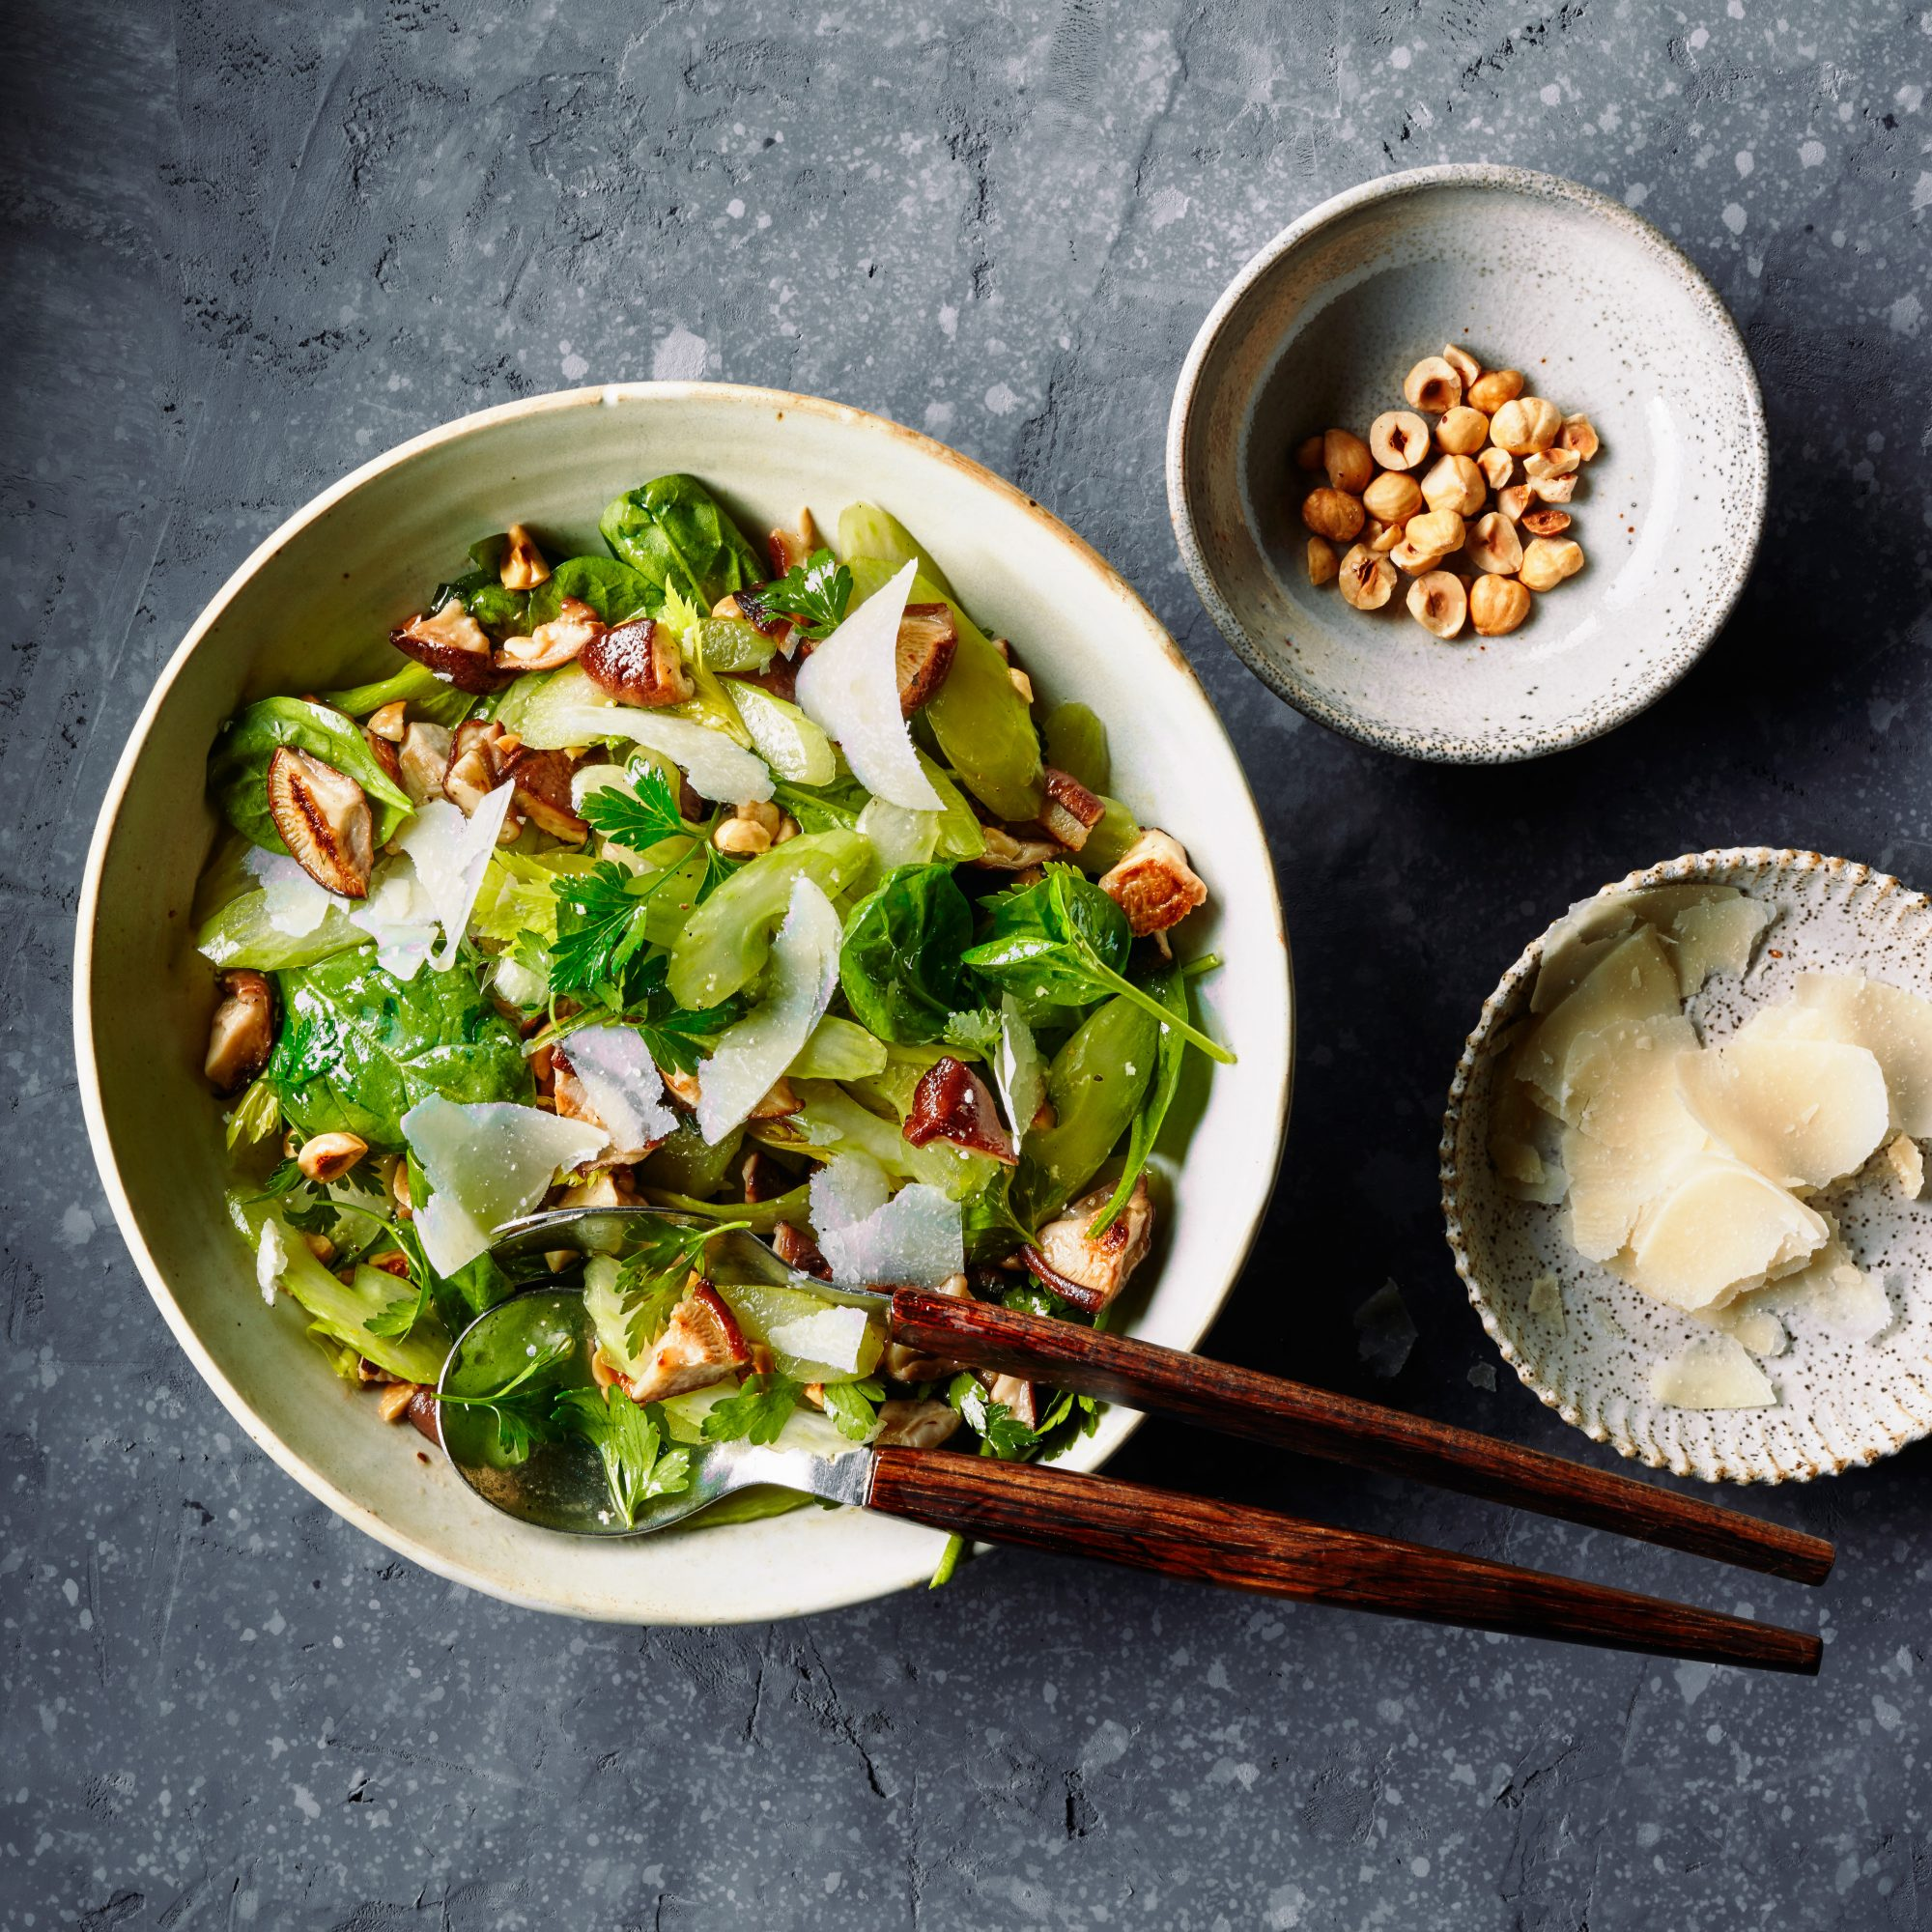 Warm Shiitake and Celery Salad